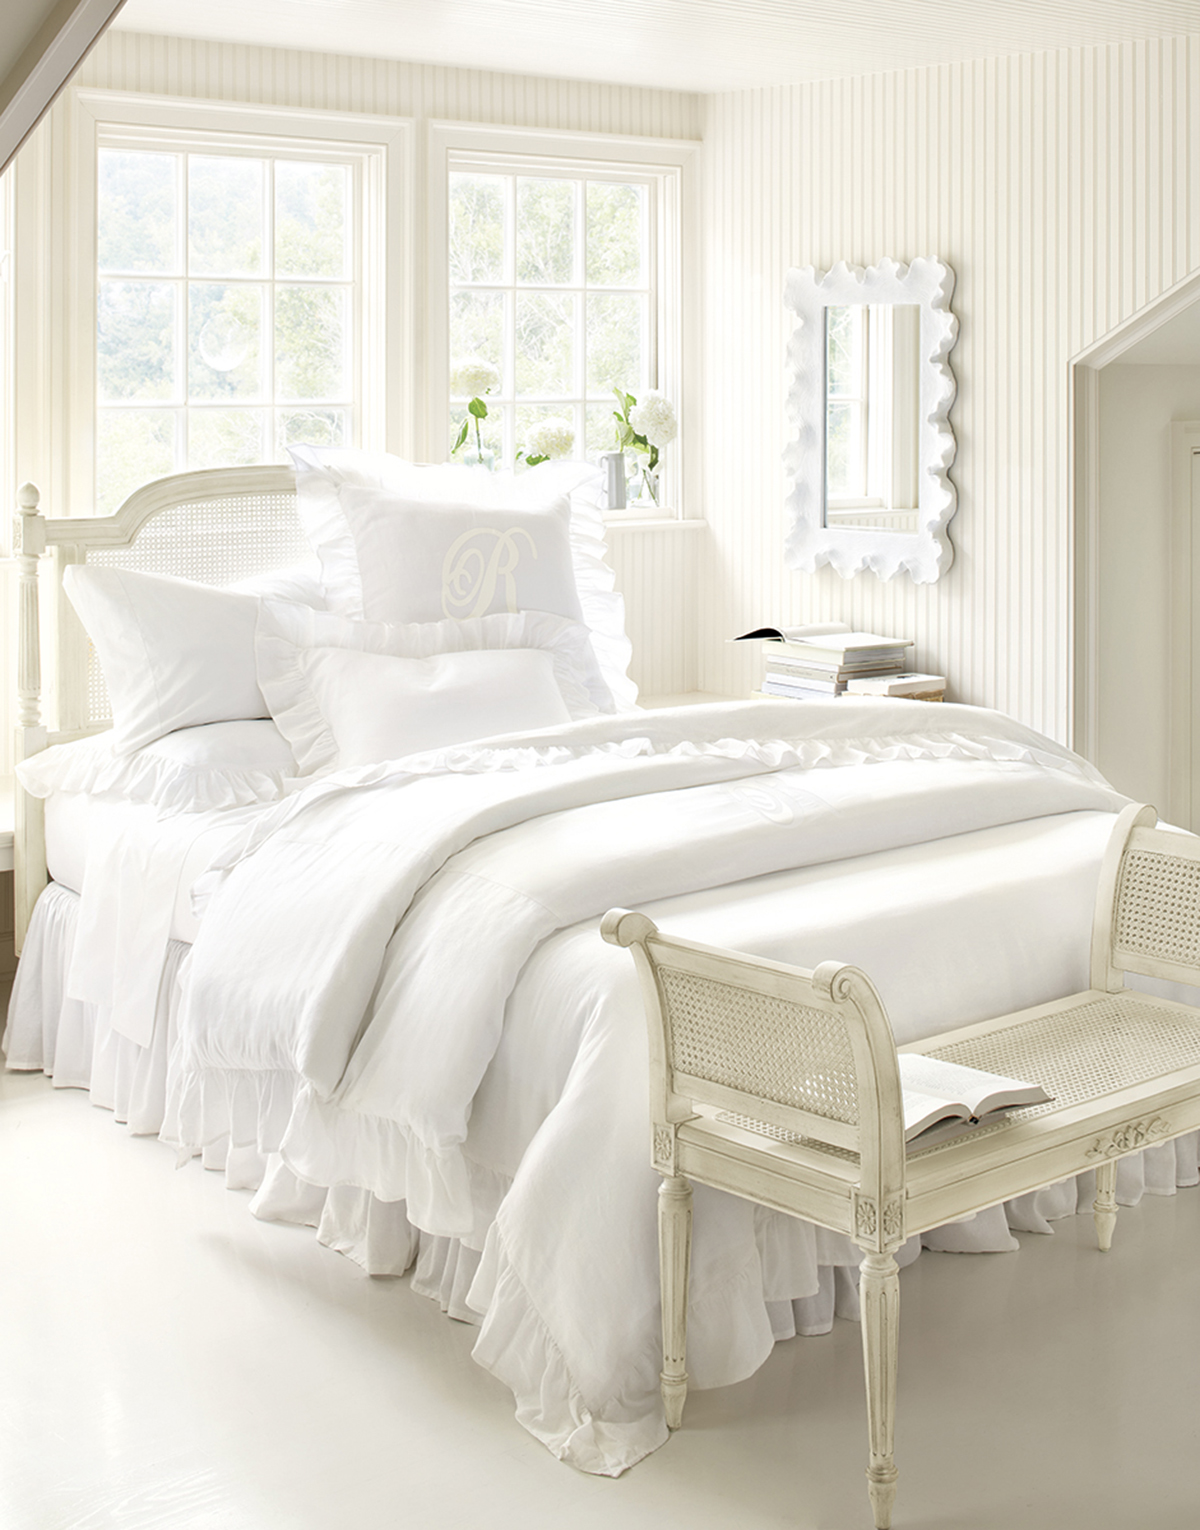 White wooden bedroom furniture sets